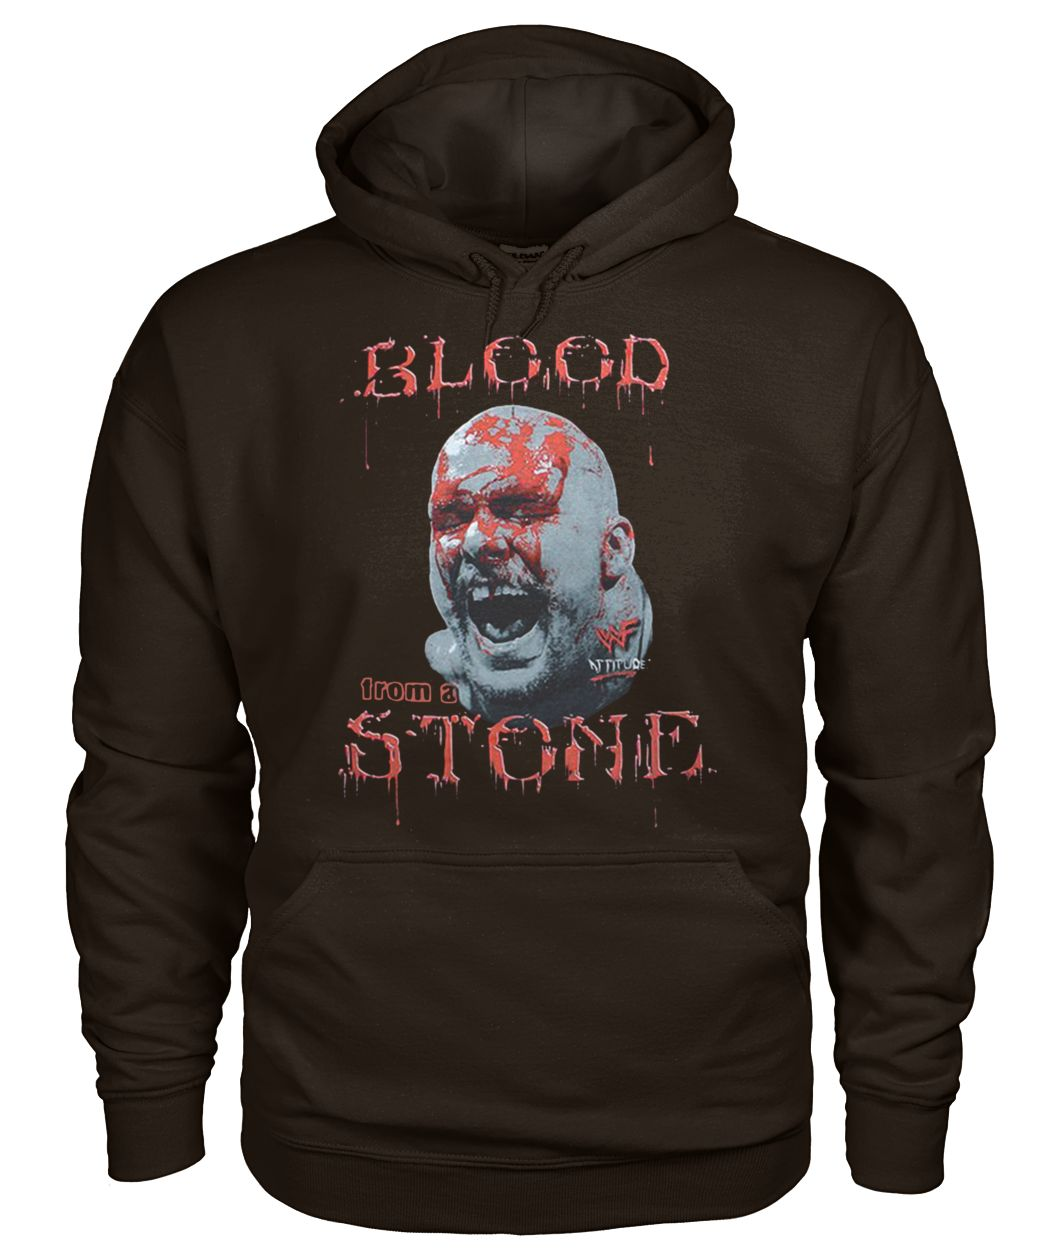 Cold steve austin bloody face blood from a stone gildan hoodie